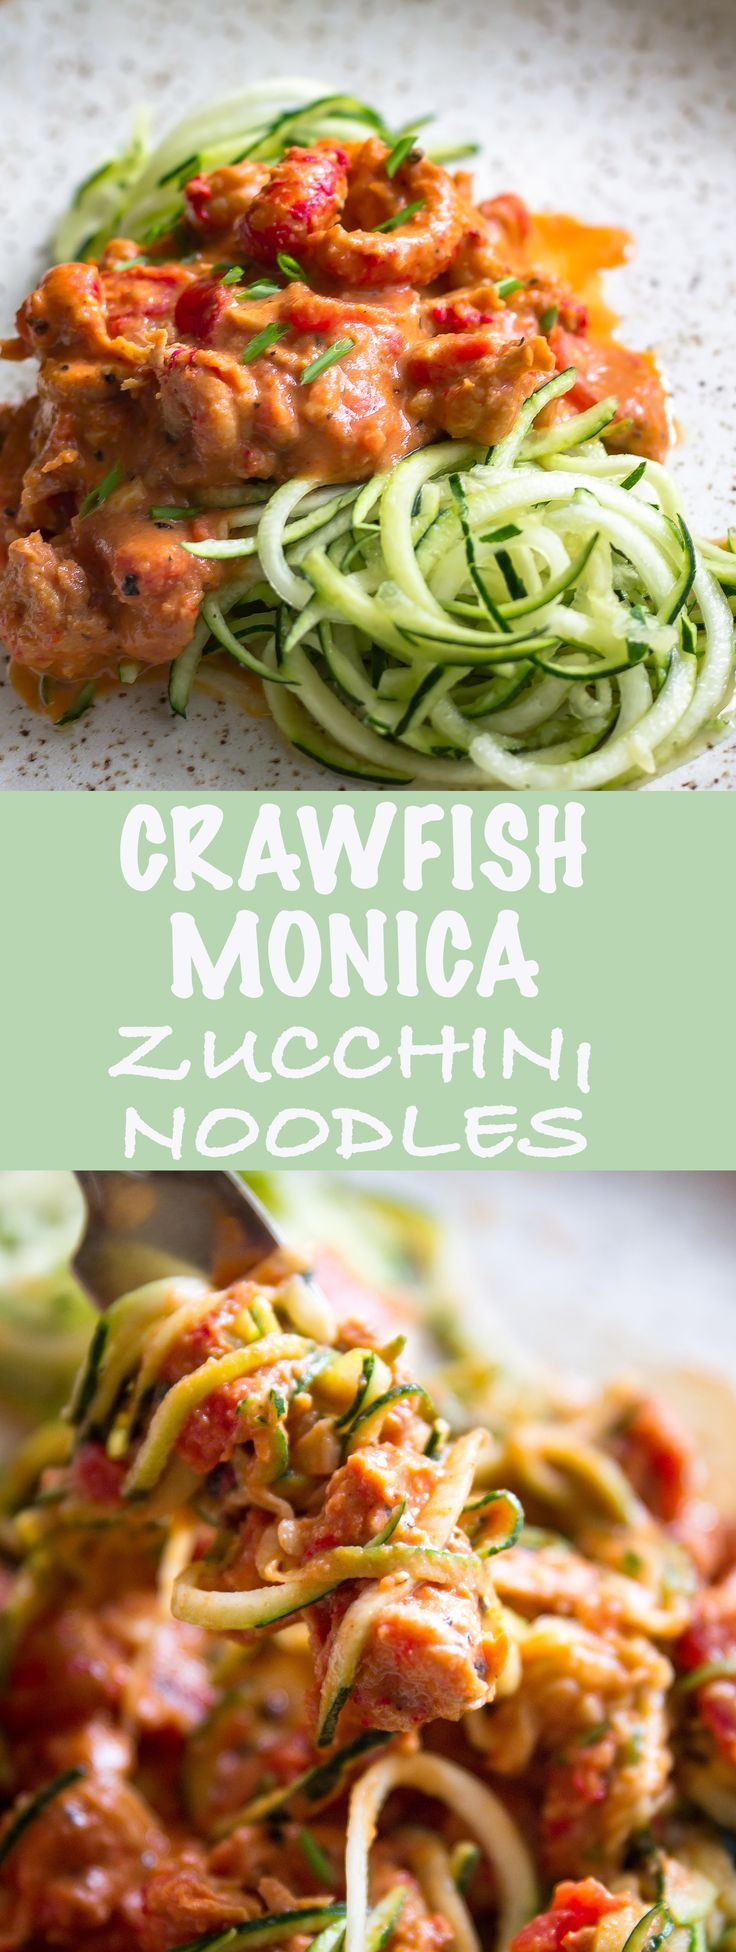 Spiced crawfish tails in a creamy tomato sauce poured over zucchini noodles. Quick and tasty!